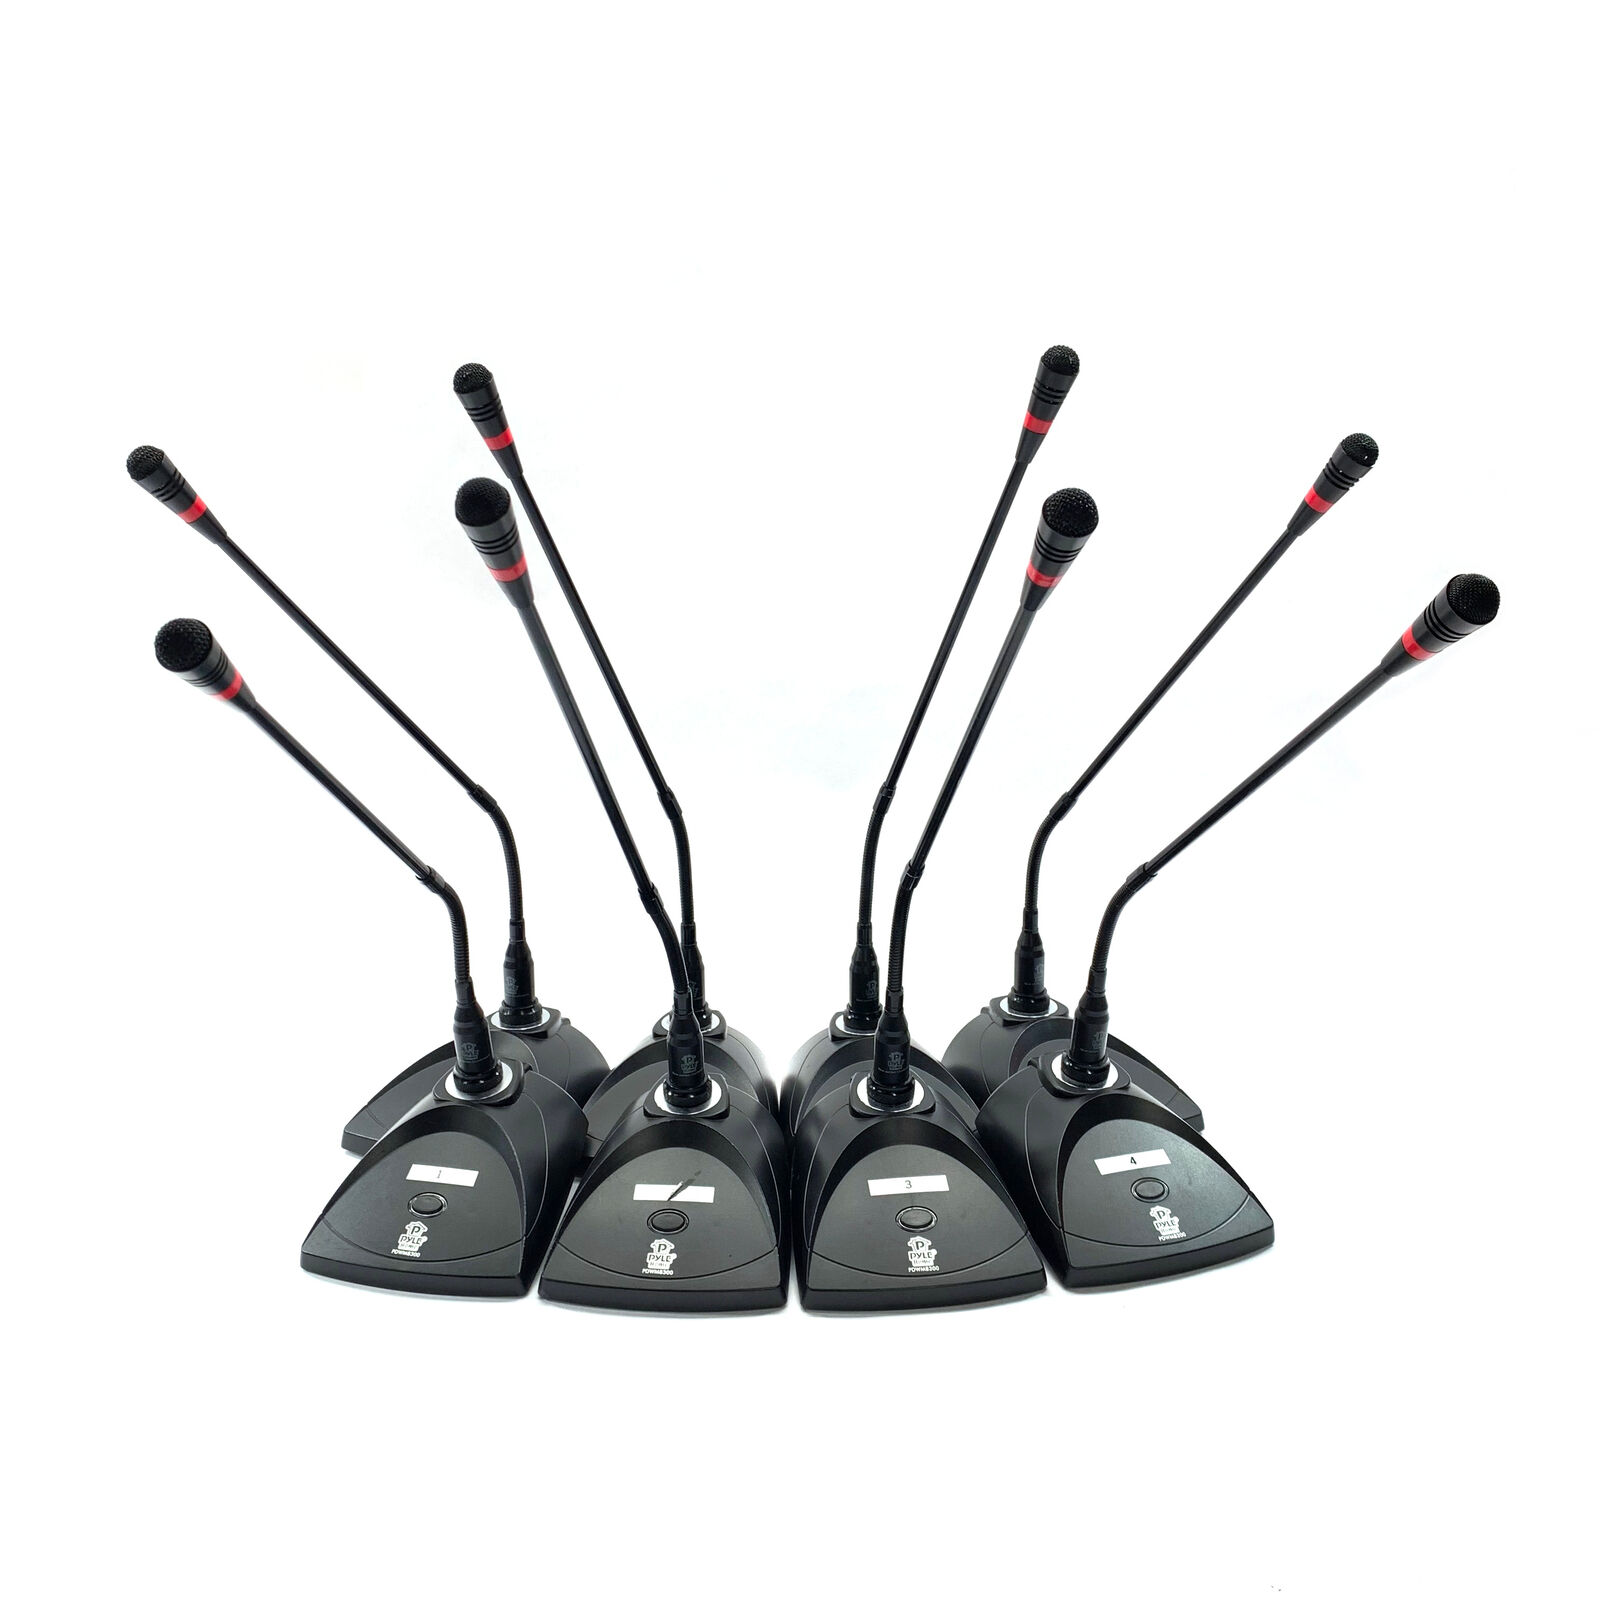 Pyle PDWM8300 8-Channel VHF Wireless Microphone System with 8 Microphones